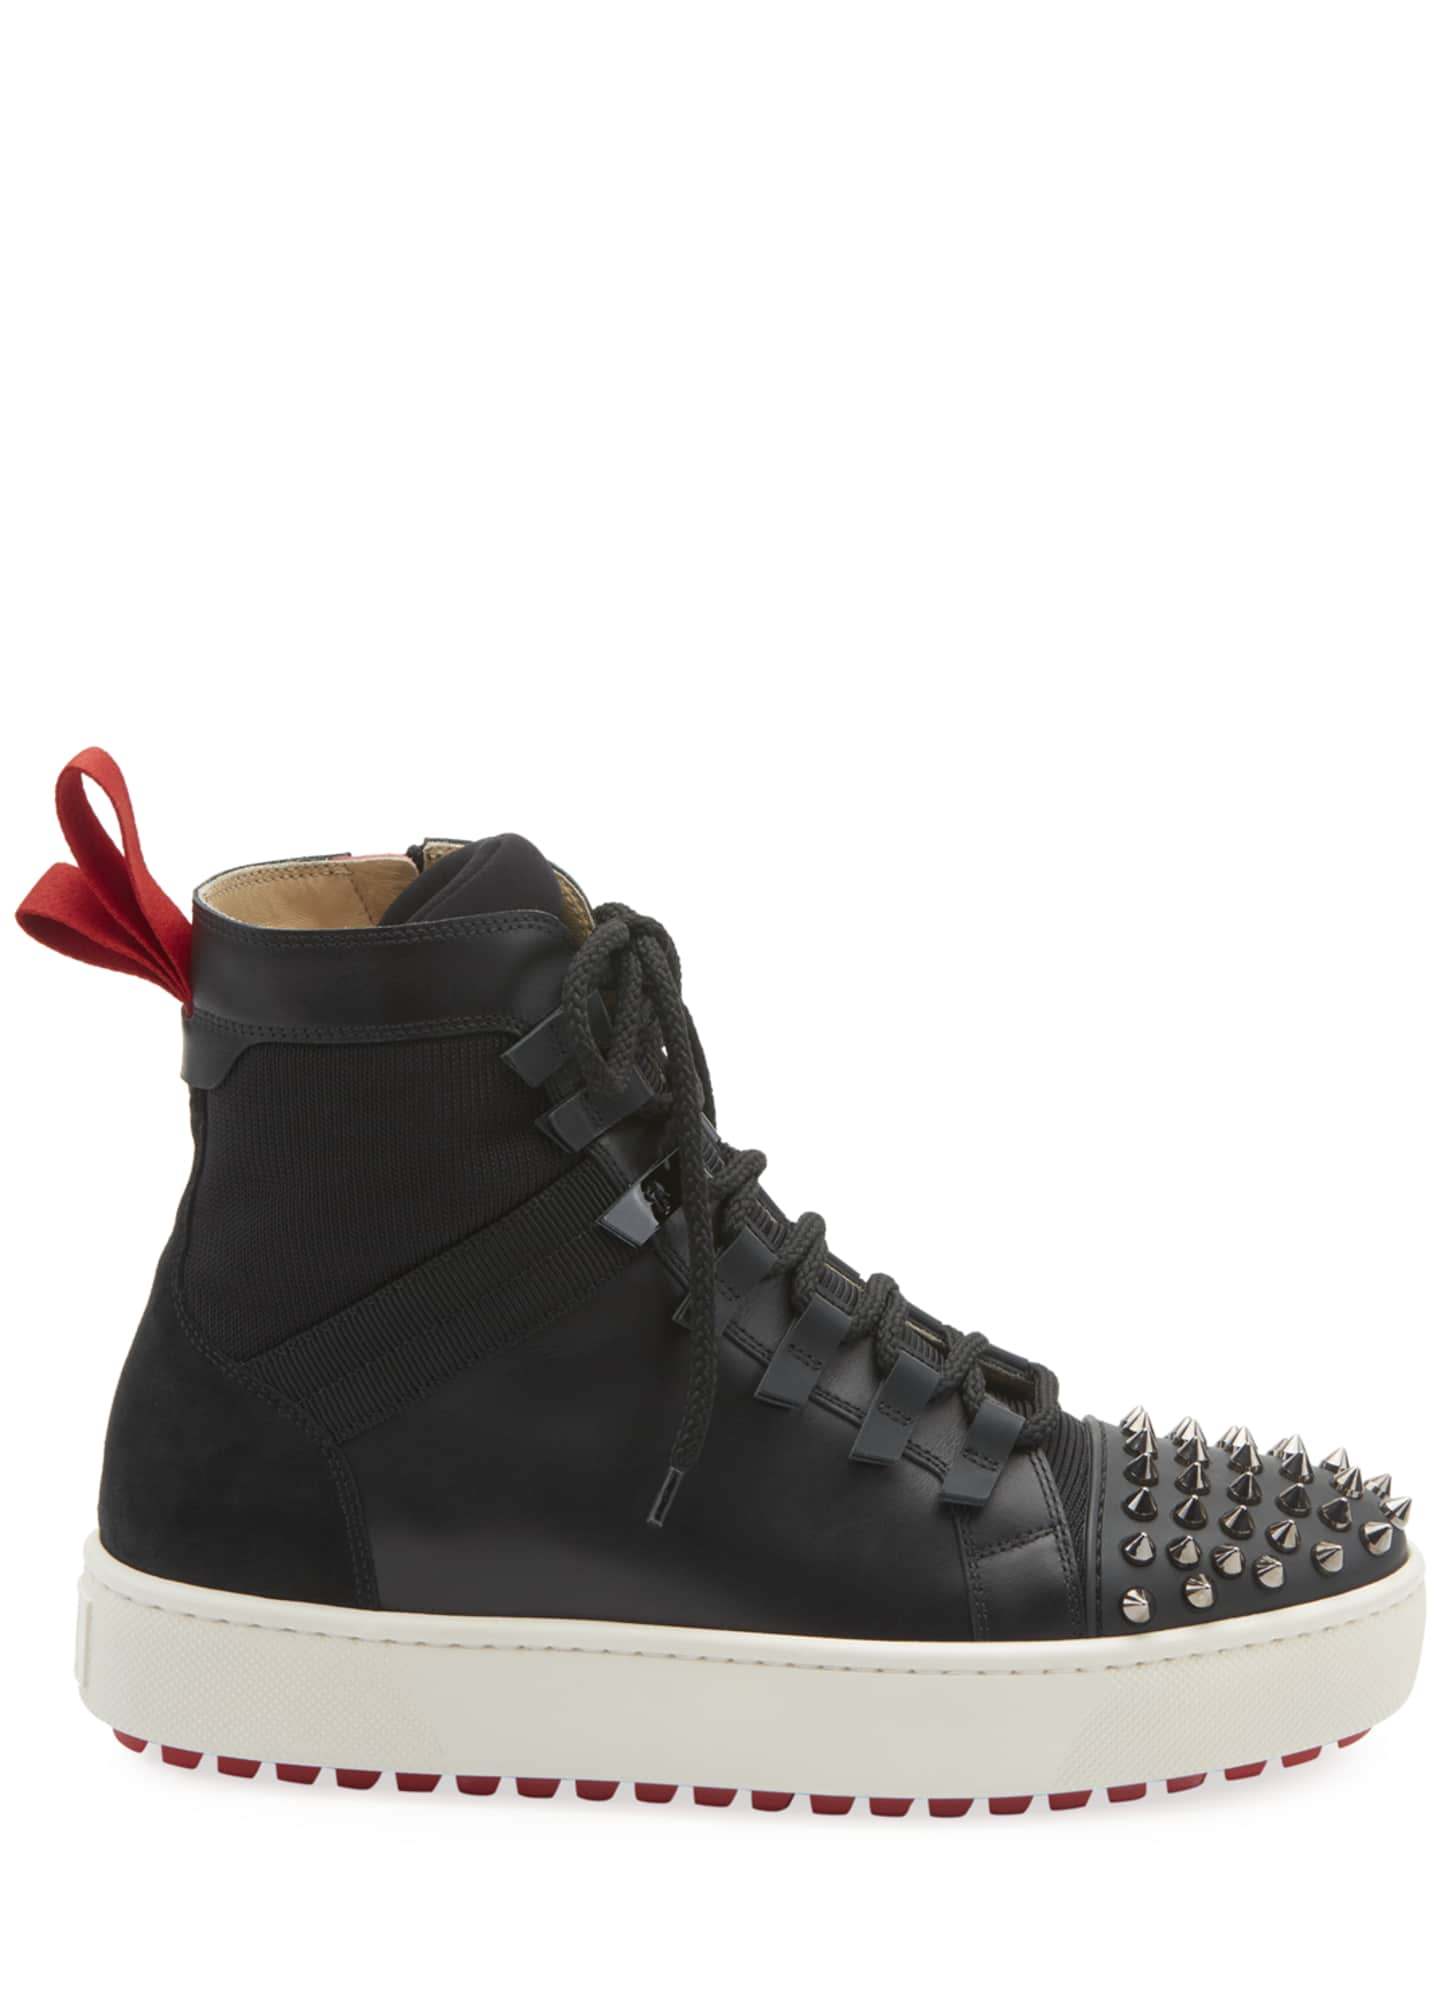 Image 2 of 2: Men's Spike Leather Red Sole Trainer Sneakers